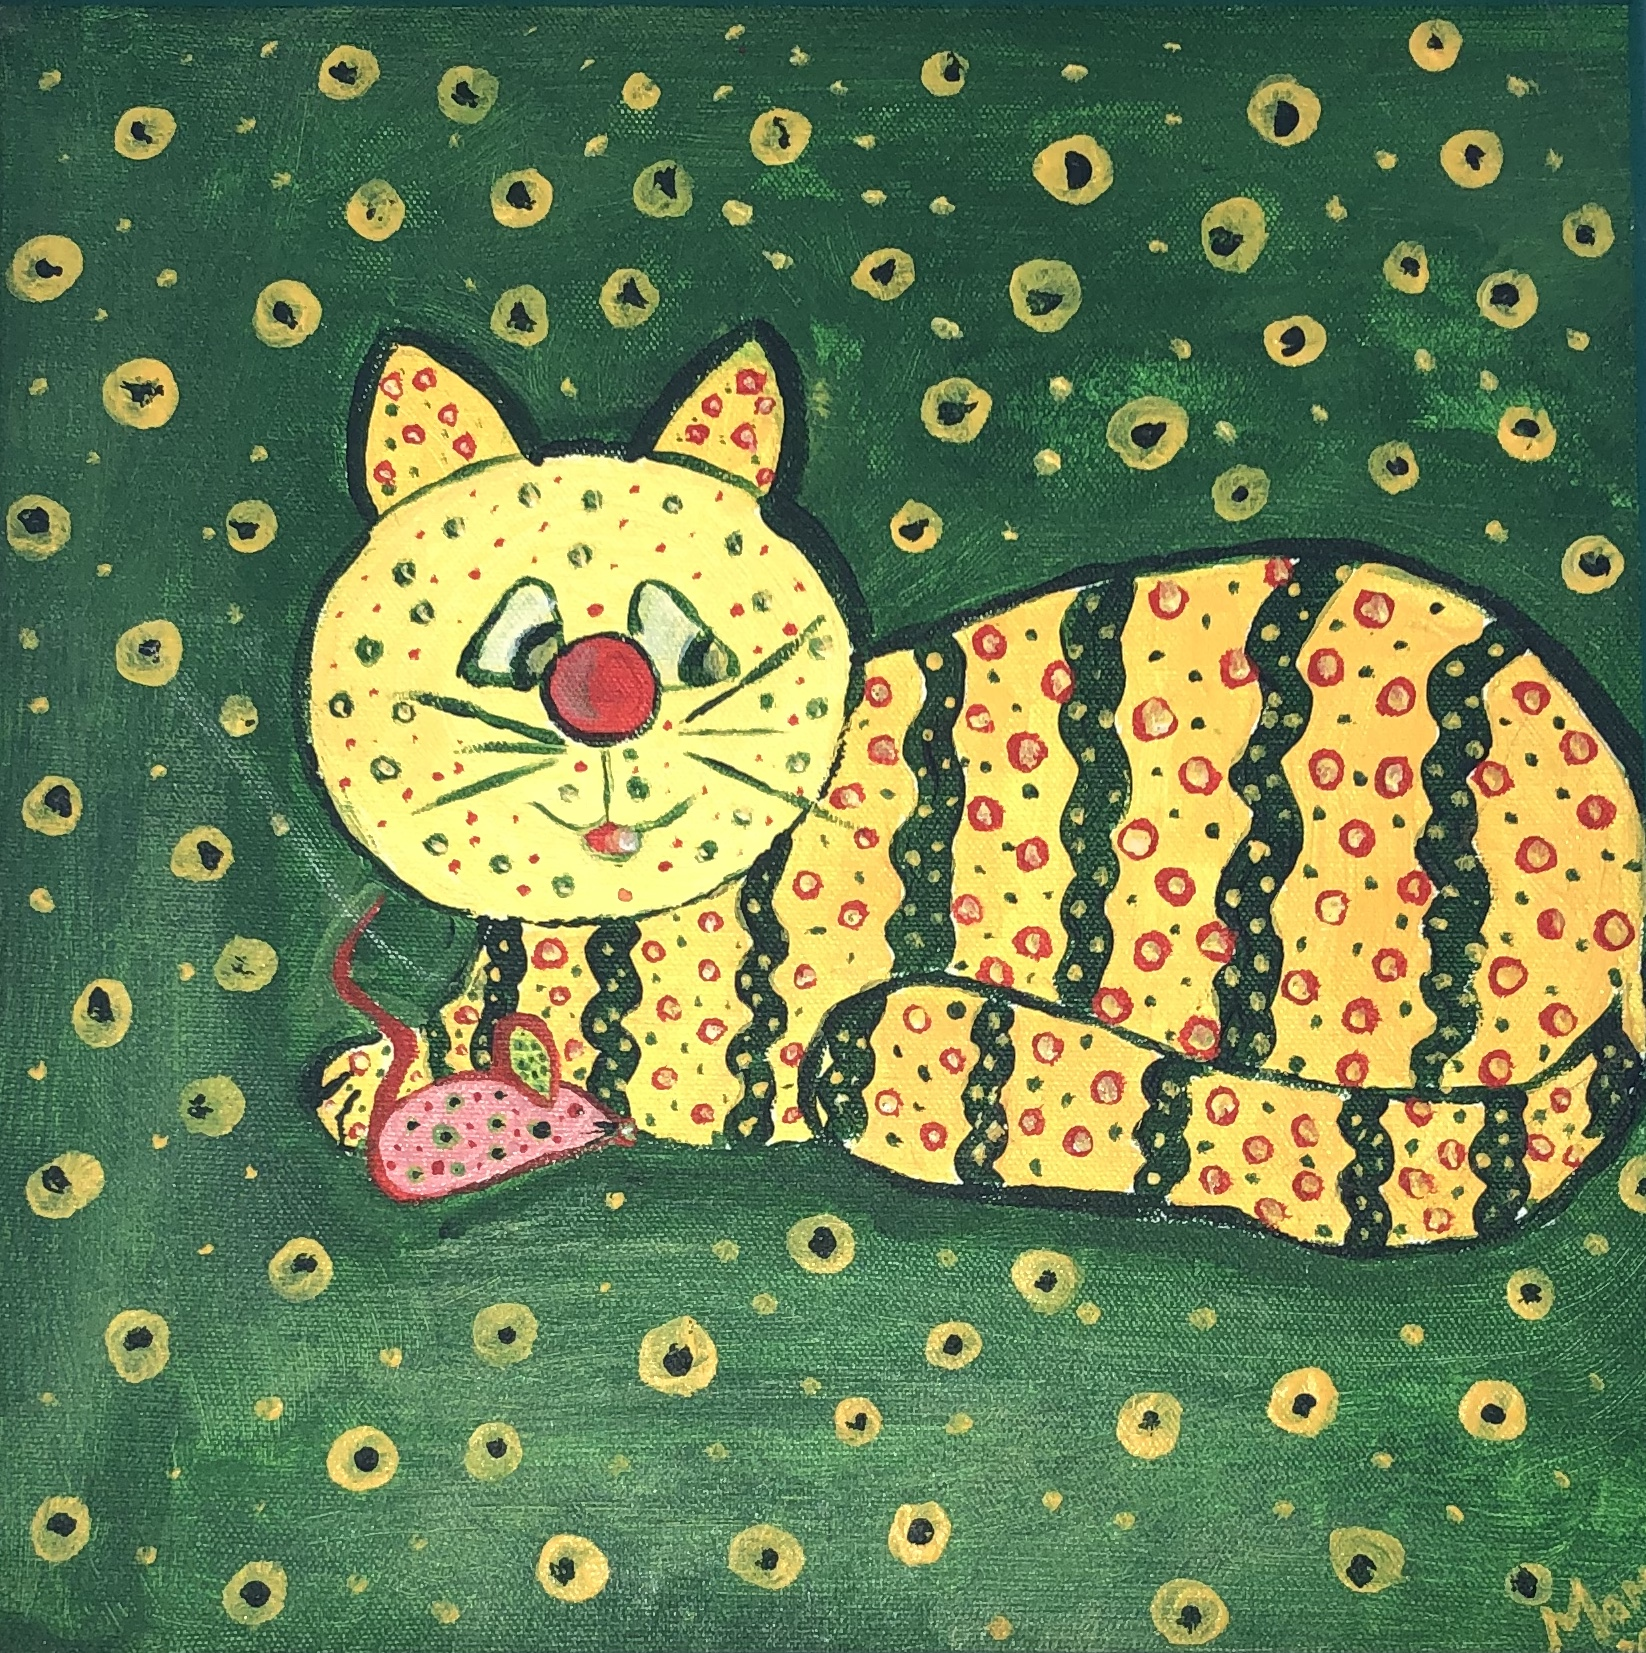 Abstract painting of the cheshire cat